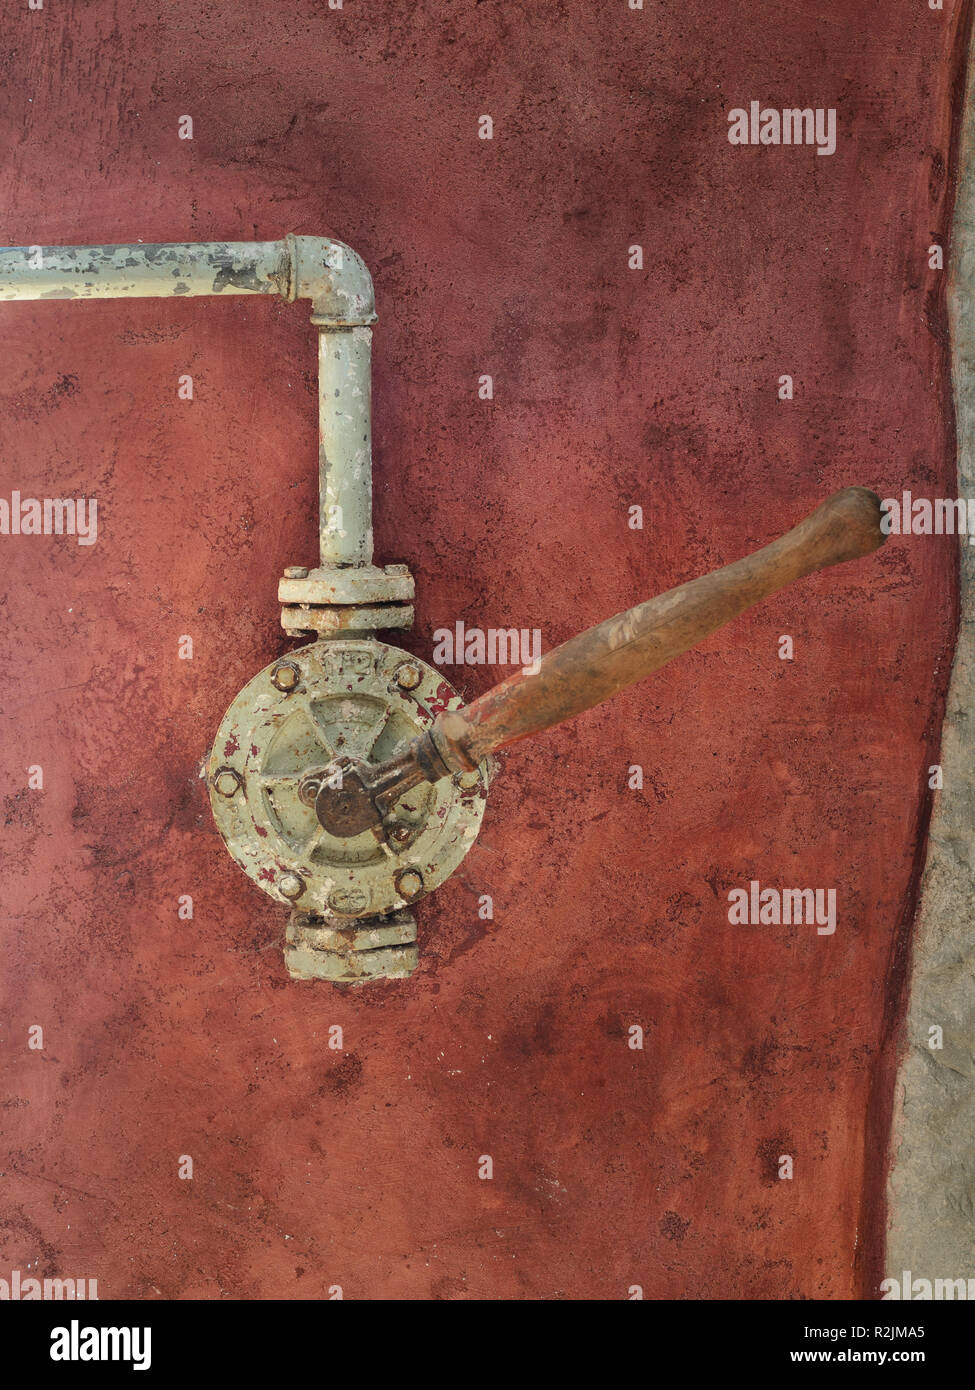 Old in-house water pomp used in old rural houses and areas with ground water - Stock Image